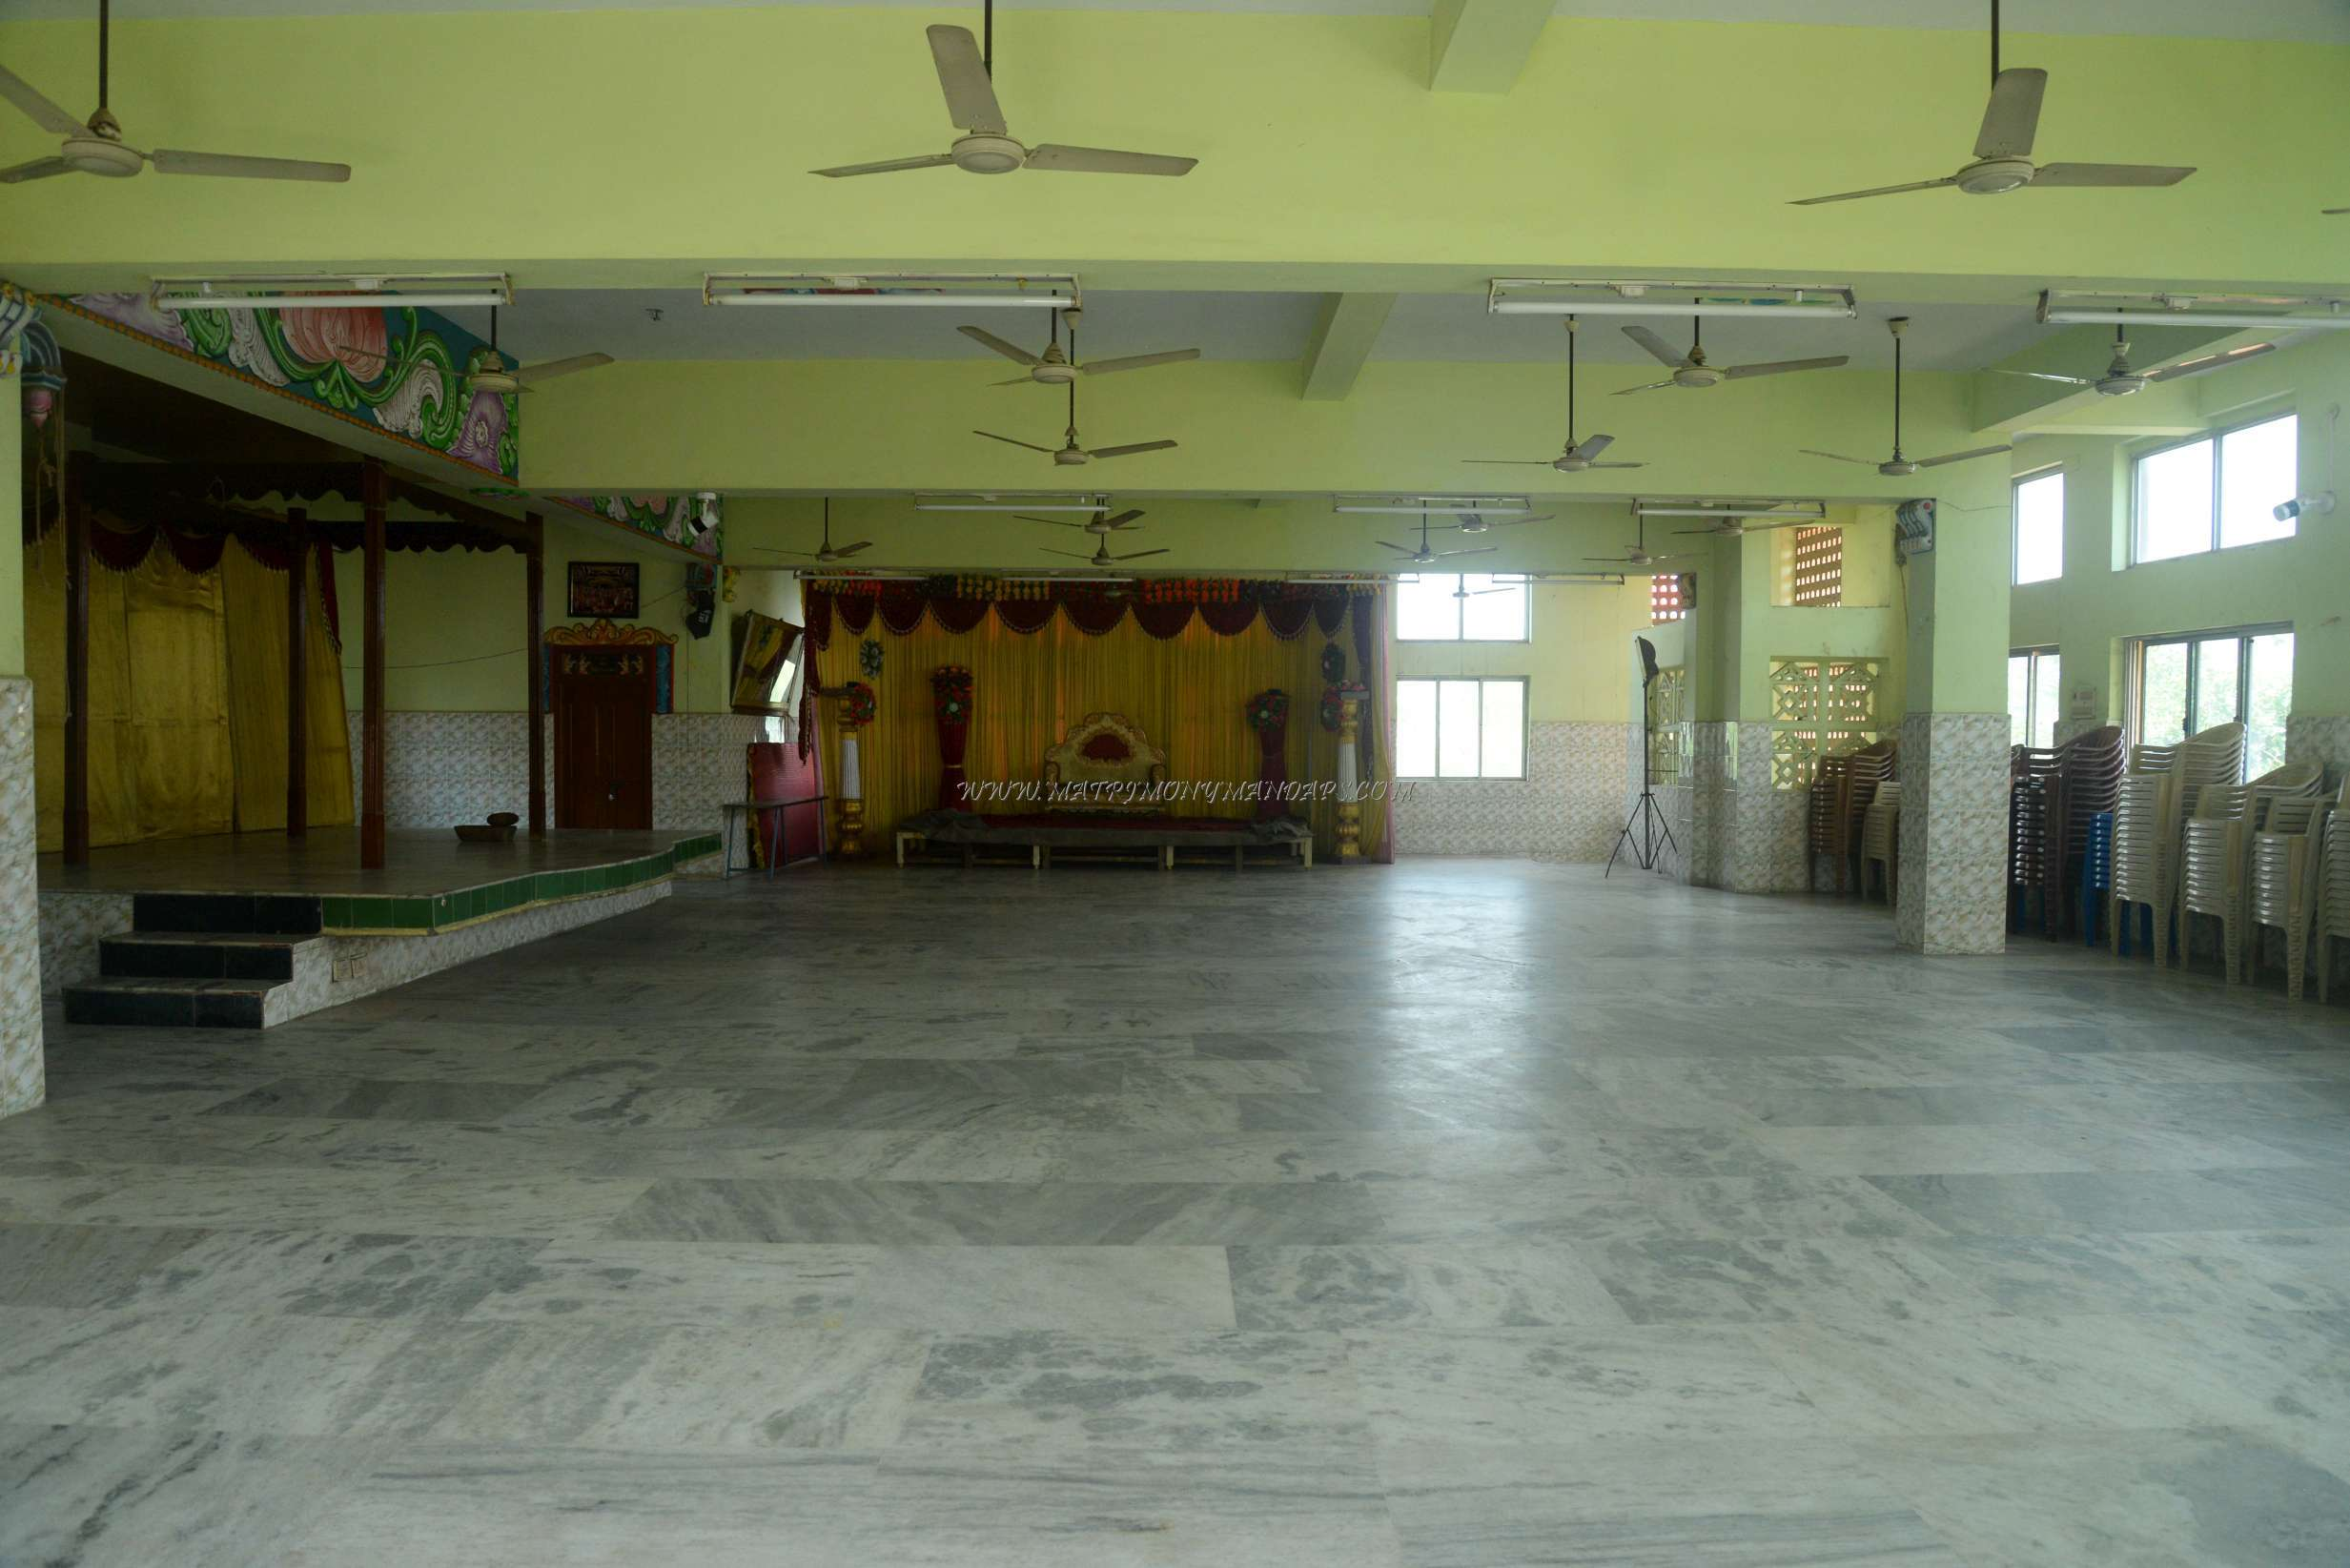 Find the availability of the Sri Hari Krishna Thirumana Mahal in Avadi, Chennai and avail special offers